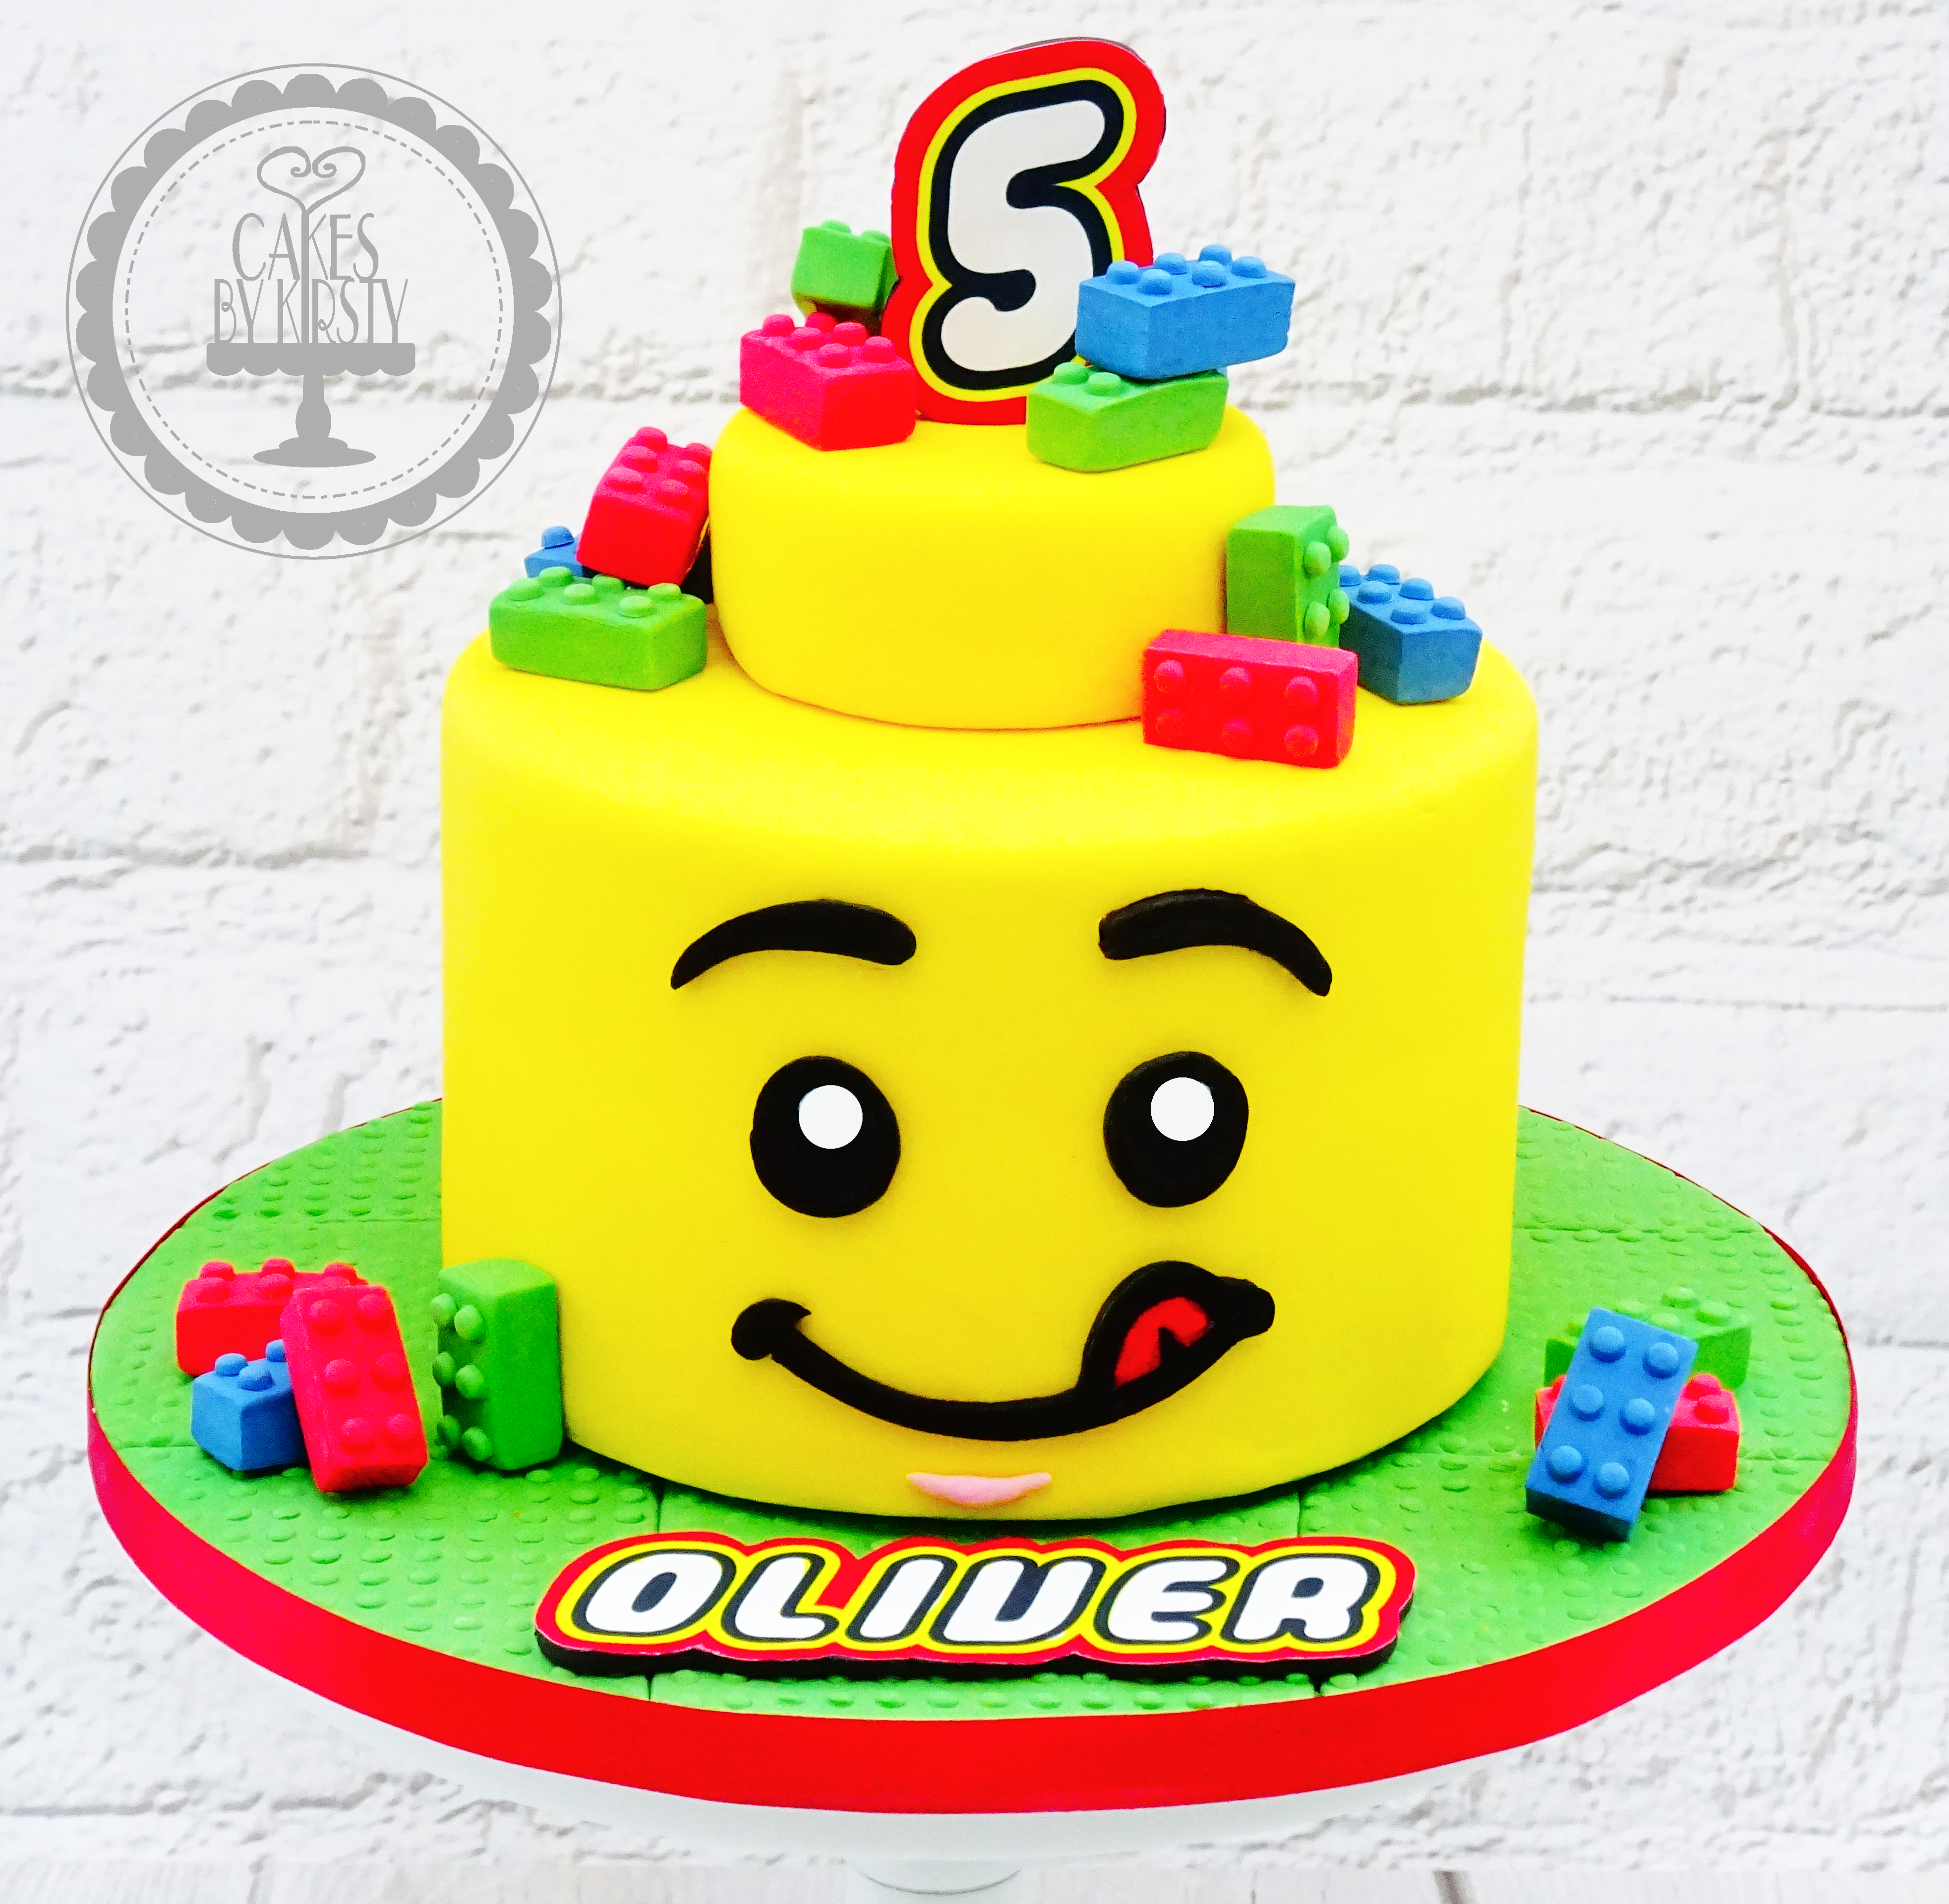 Astonishing Cakes By Kirsty Childrens Cakes Funny Birthday Cards Online Elaedamsfinfo